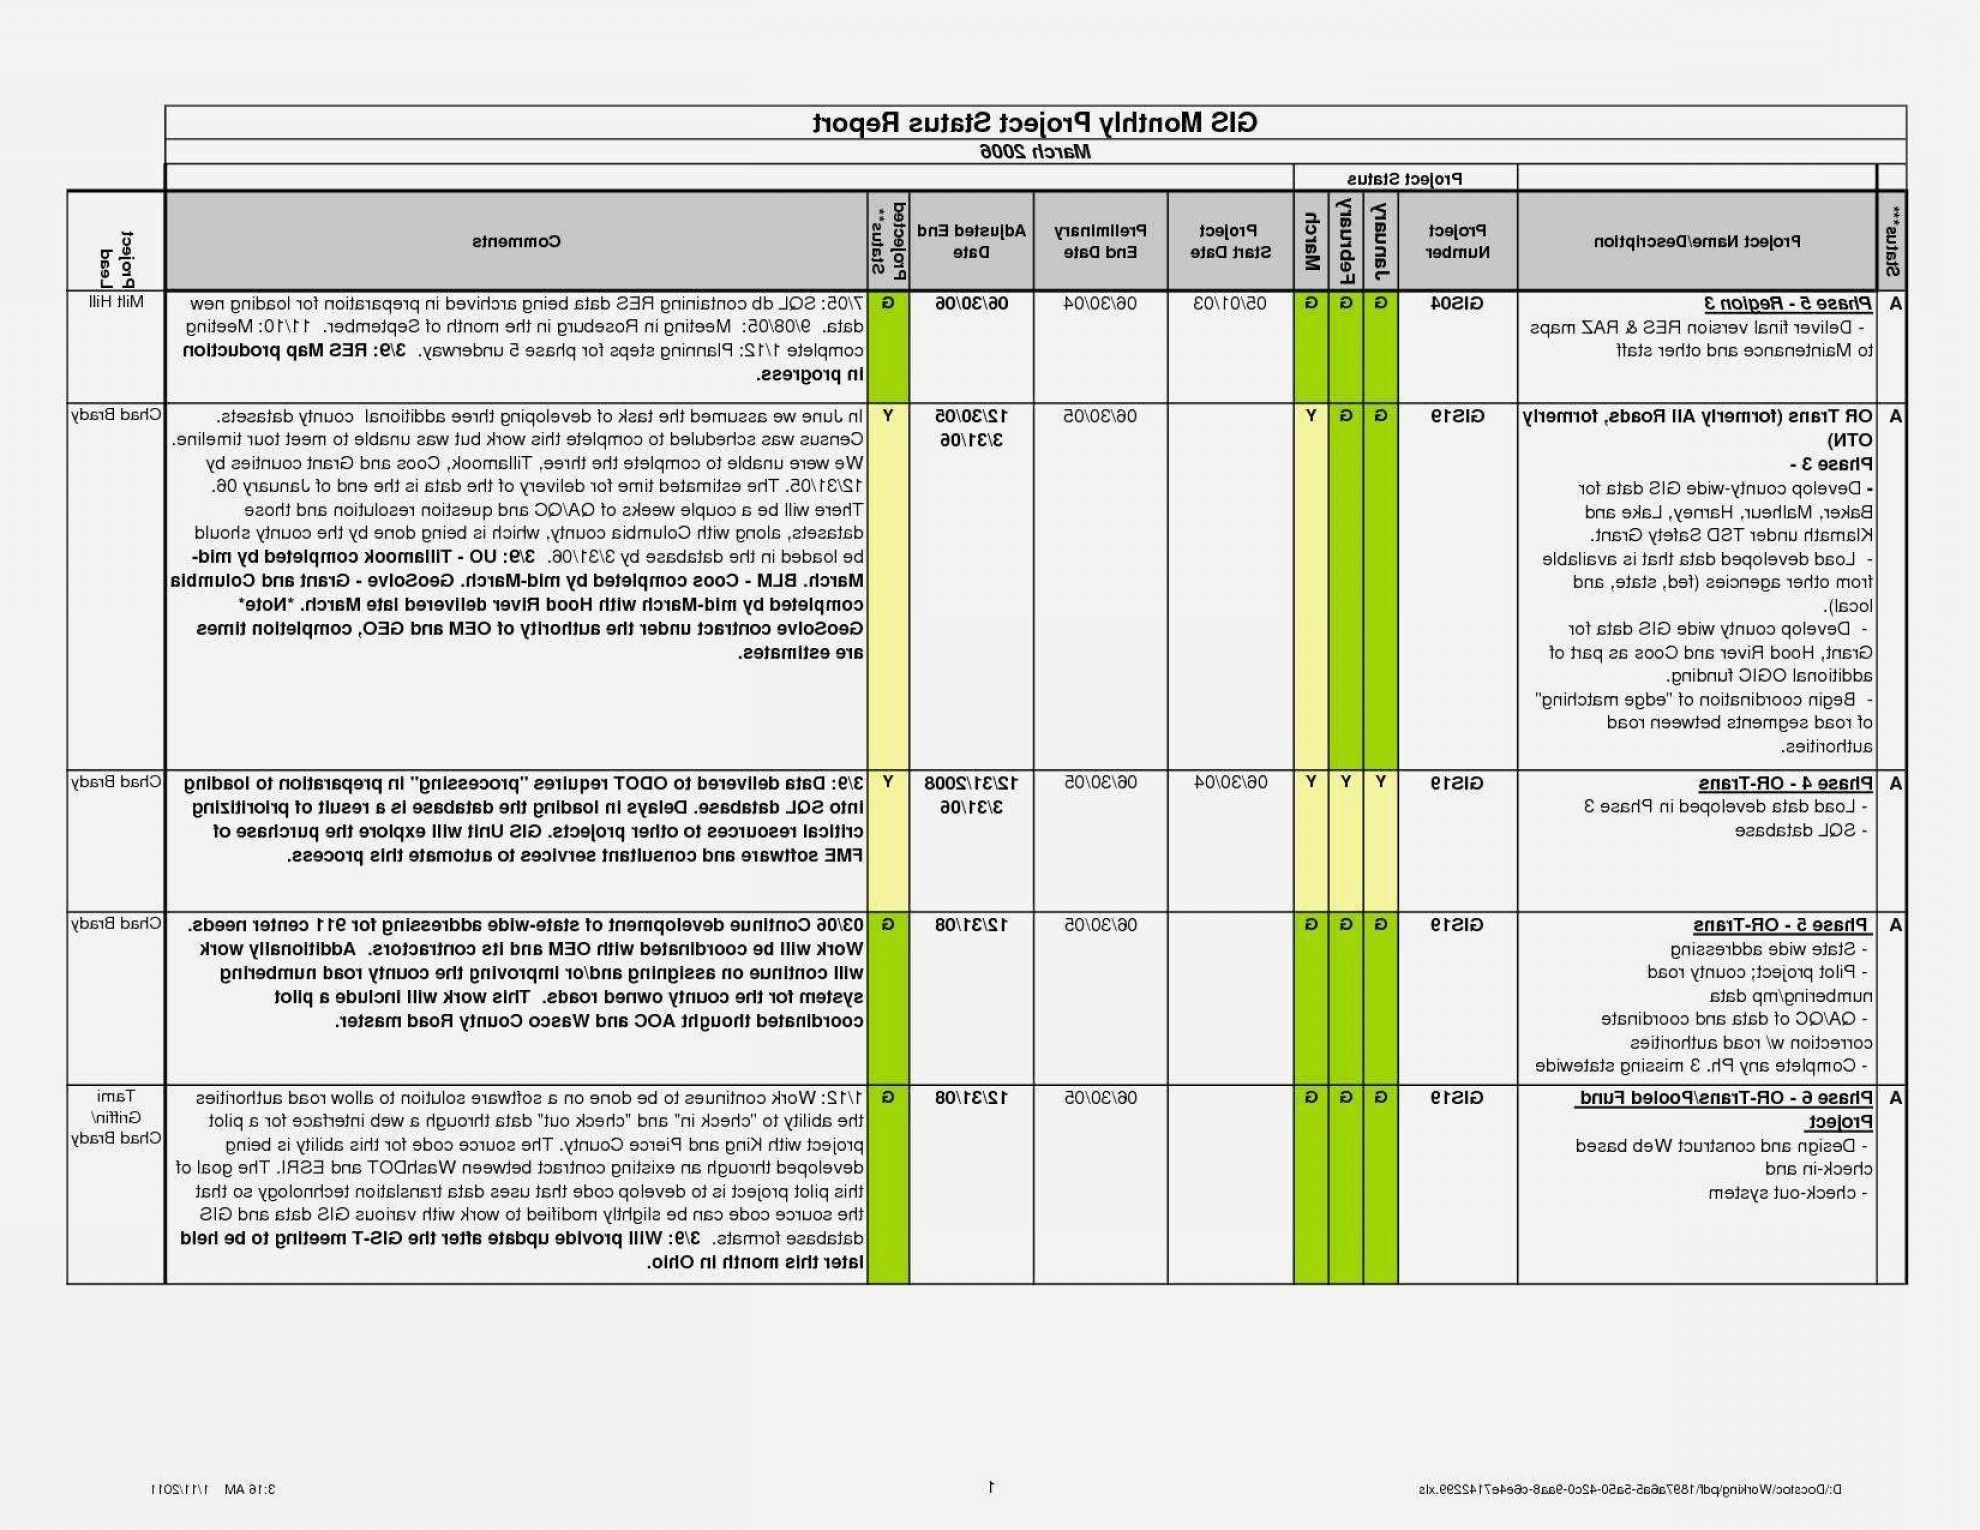 000 Breathtaking Project Management Statu Report Template Free High Def  Excel Weekly WordFull